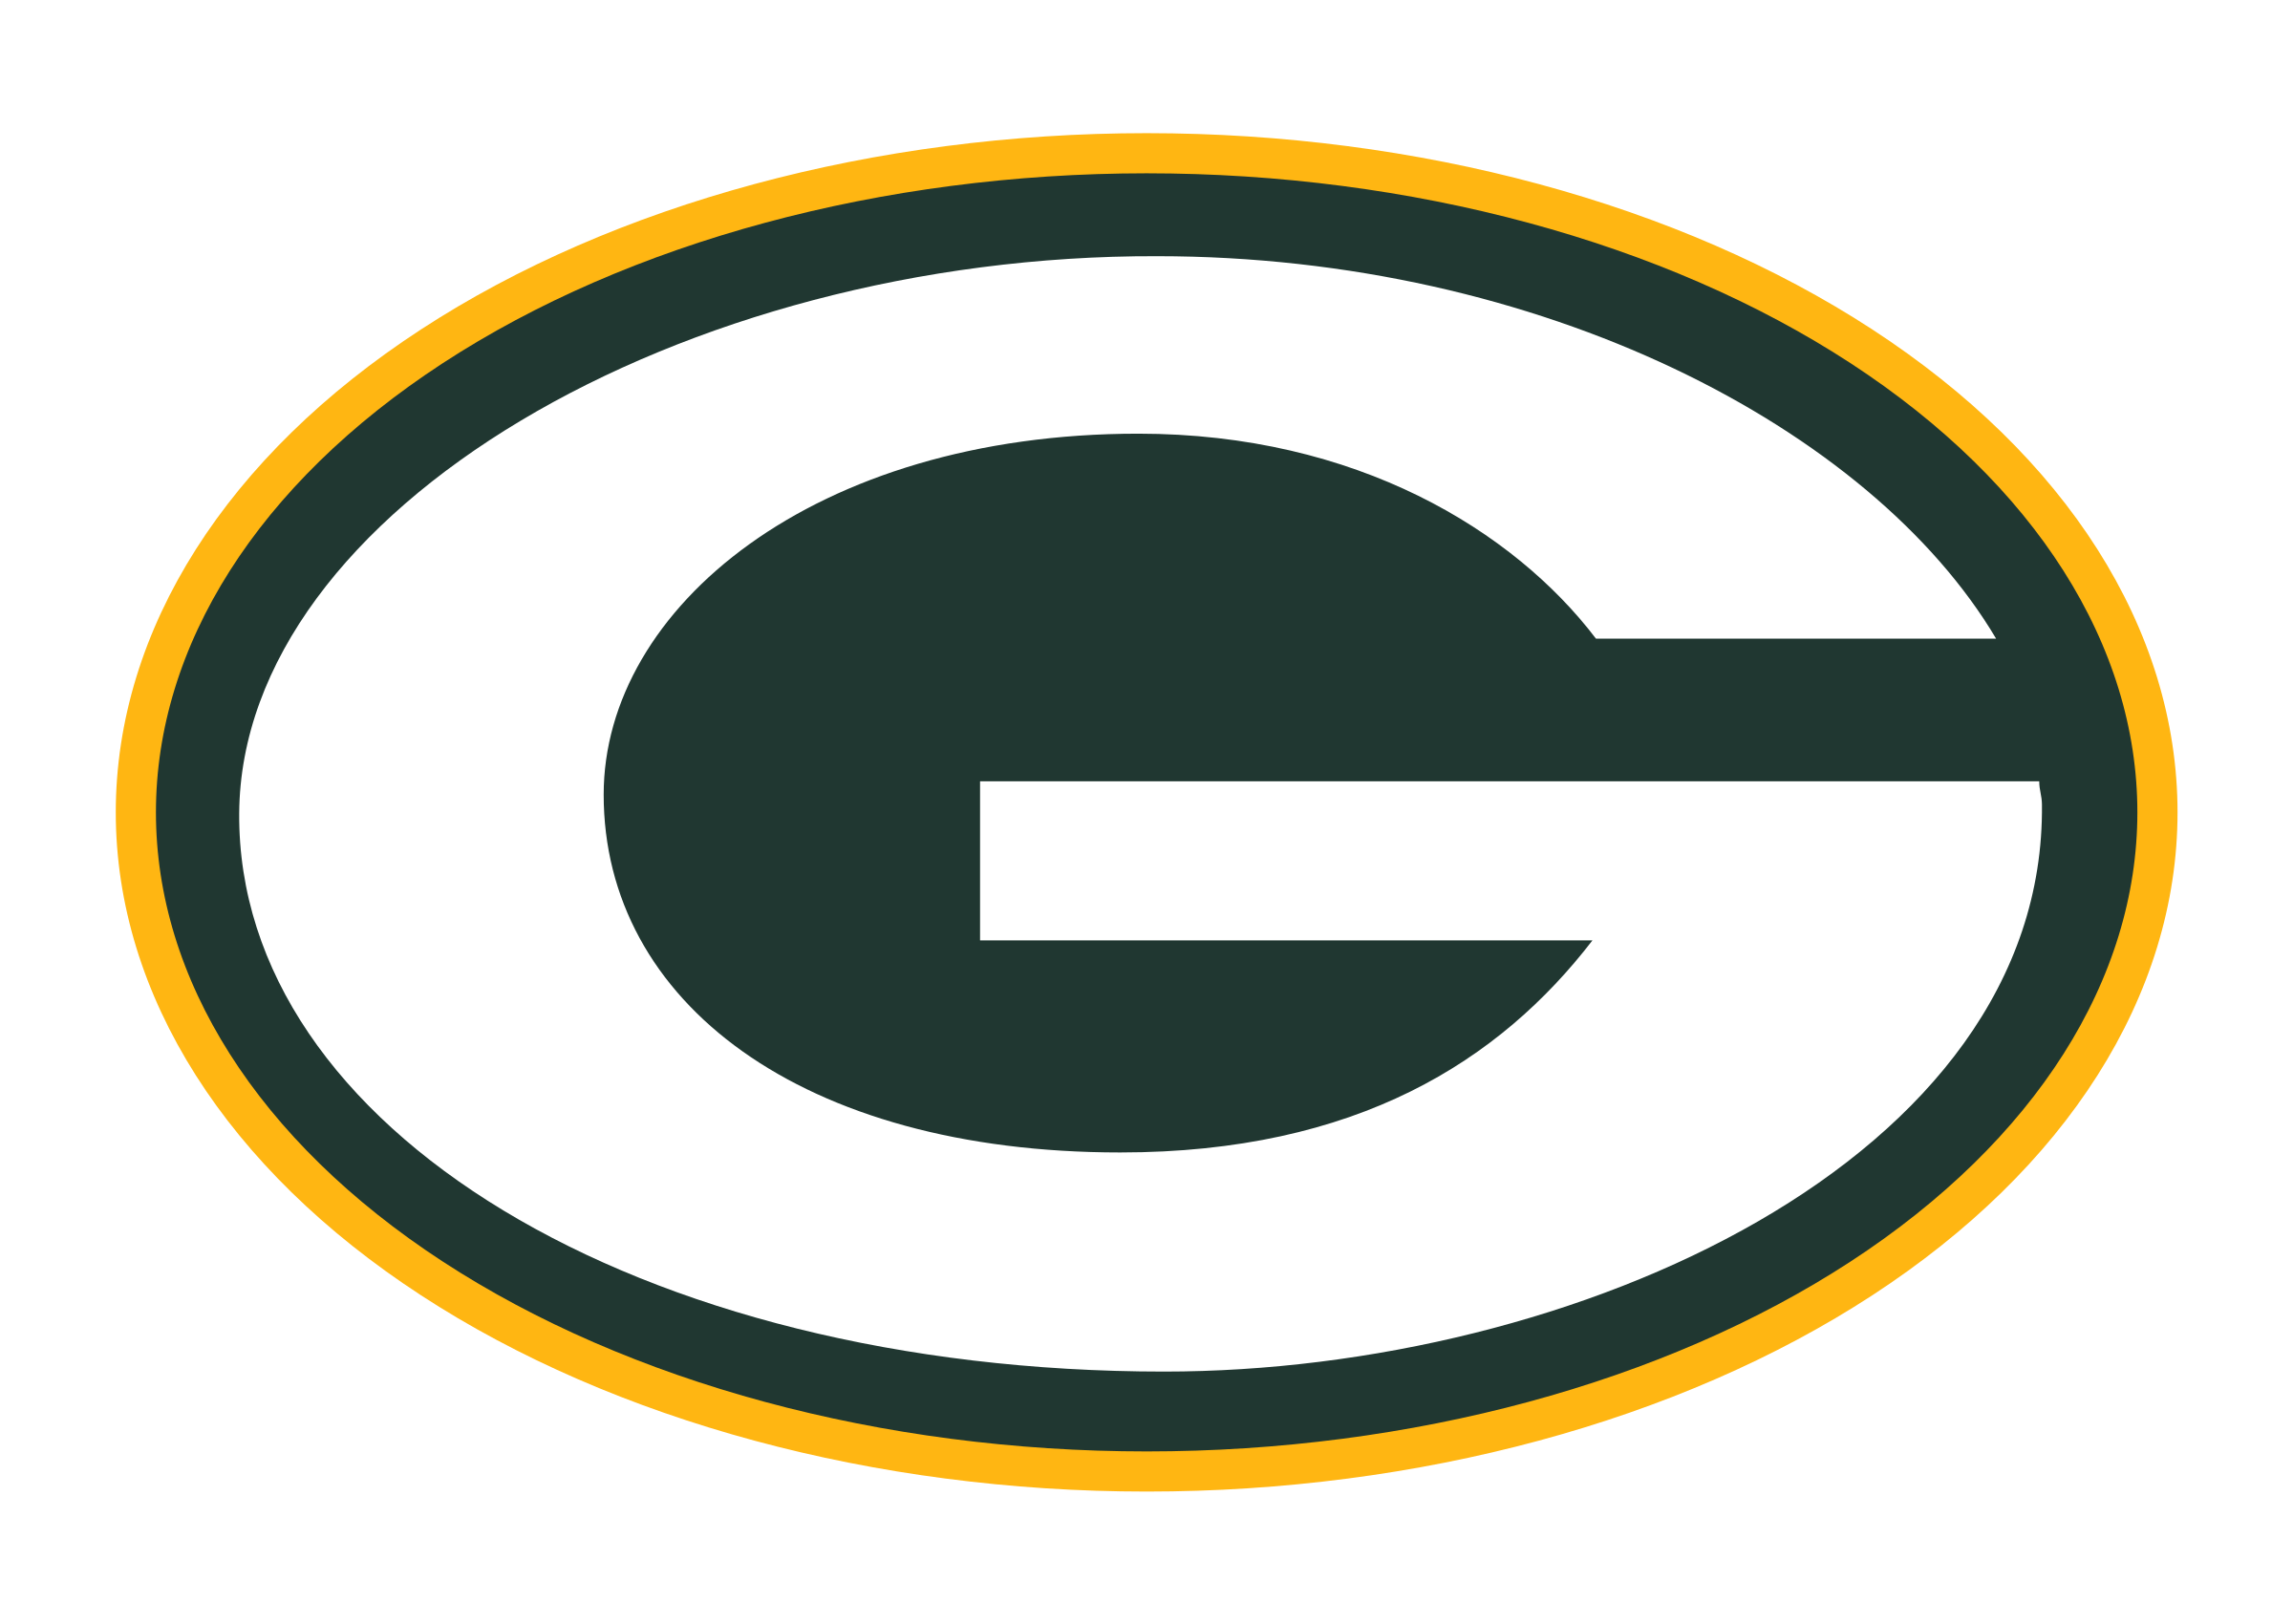 Green Bay Packers Logo PNG Transparent & SVG Vector.